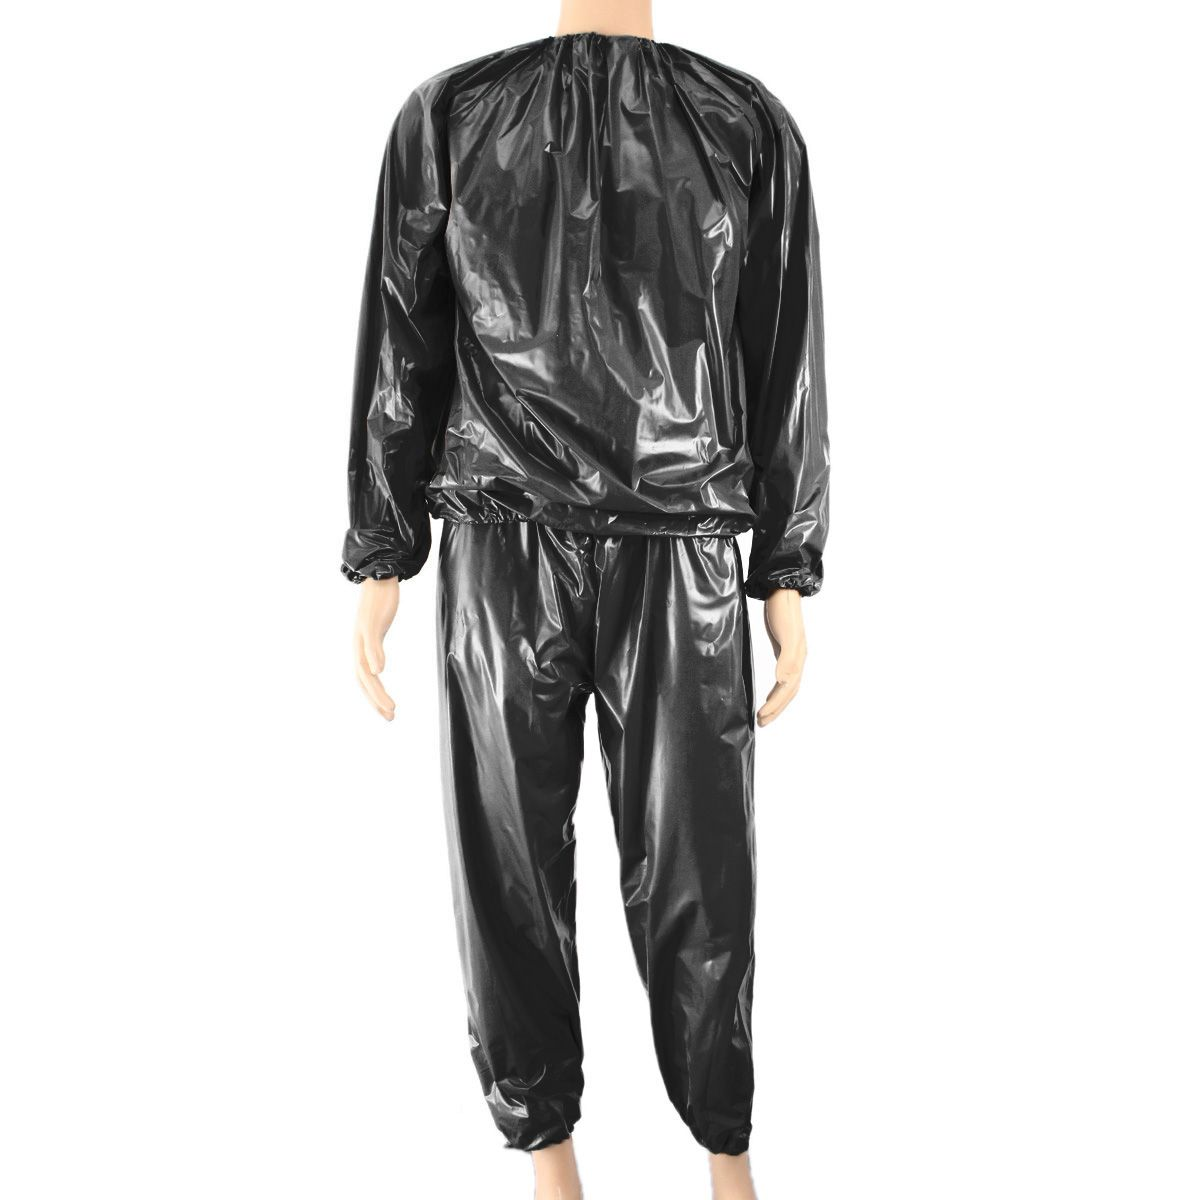 Fitness Waterproof PVC Heavy Duty Sauna Suit Sweat Clothes Gym Training Slimming Workout Weight Loss Sauna Clothes L XXXL 4XL